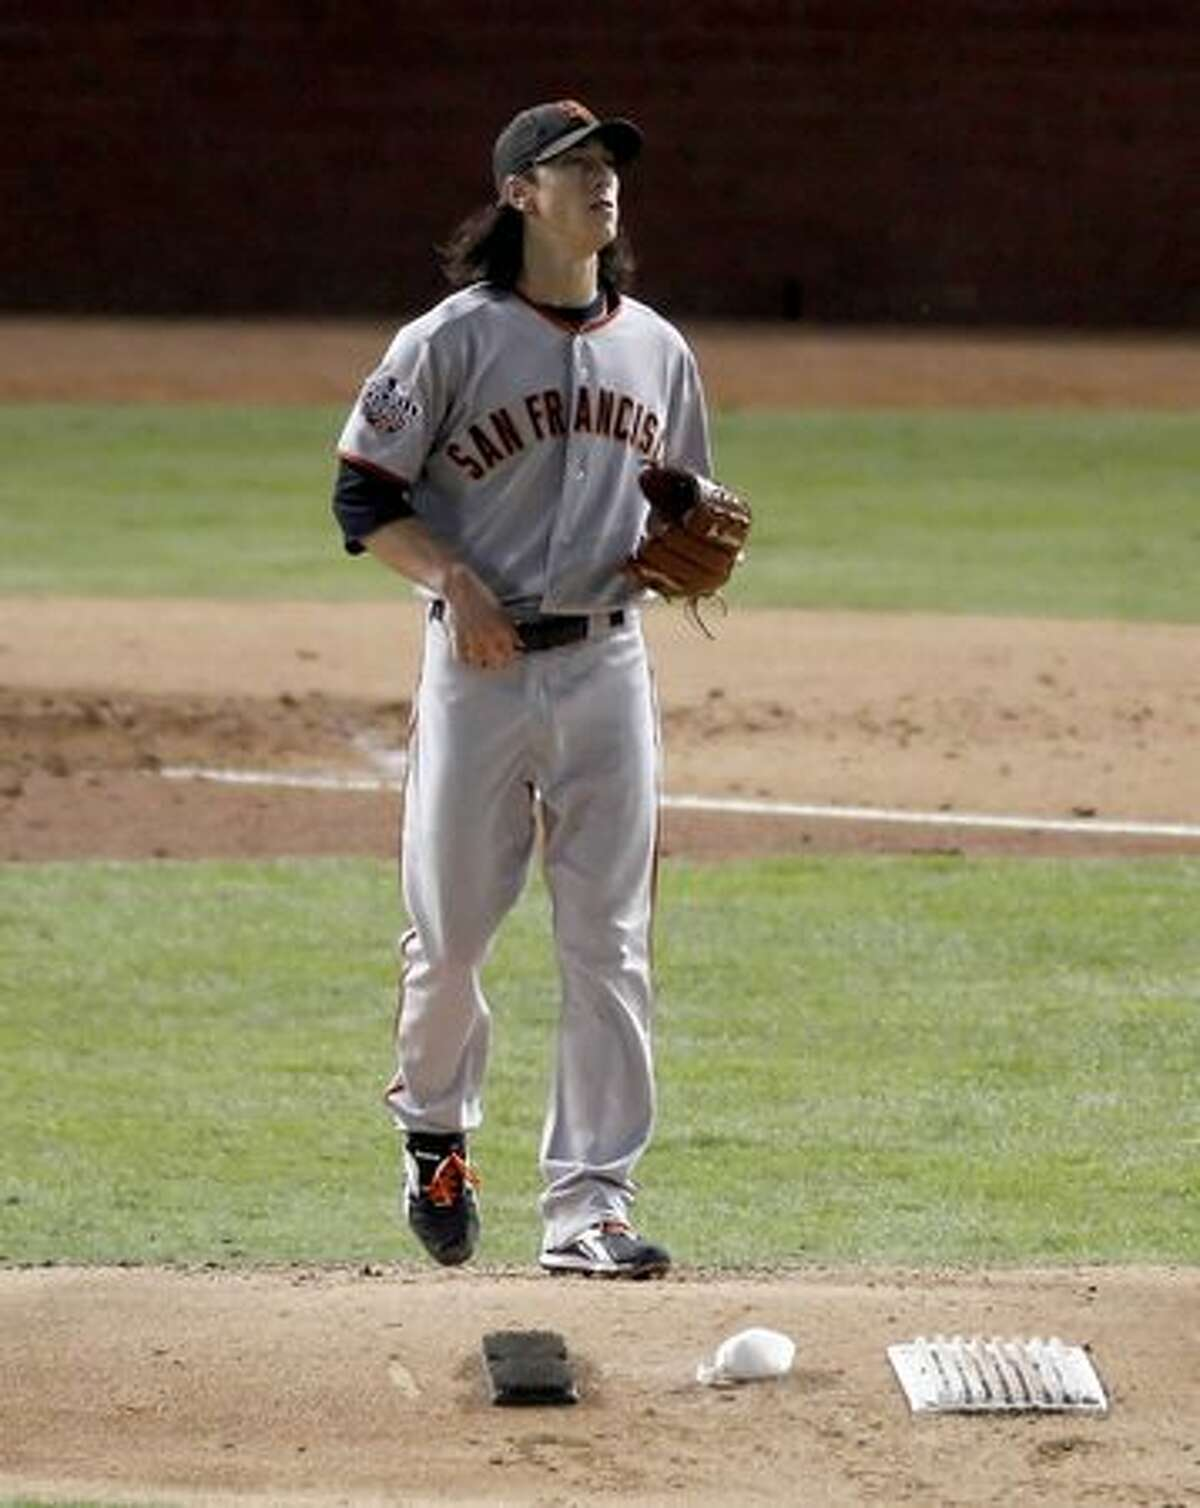 San Francisco Giants starting pitcher Tim Lincecum (55) returns to the mound after striking out Bengie Molina in the third inning during game 5 of the 2010 World Series between the San Francisco Giants and the Texas Rangers on Monday in Arlington, Tx.